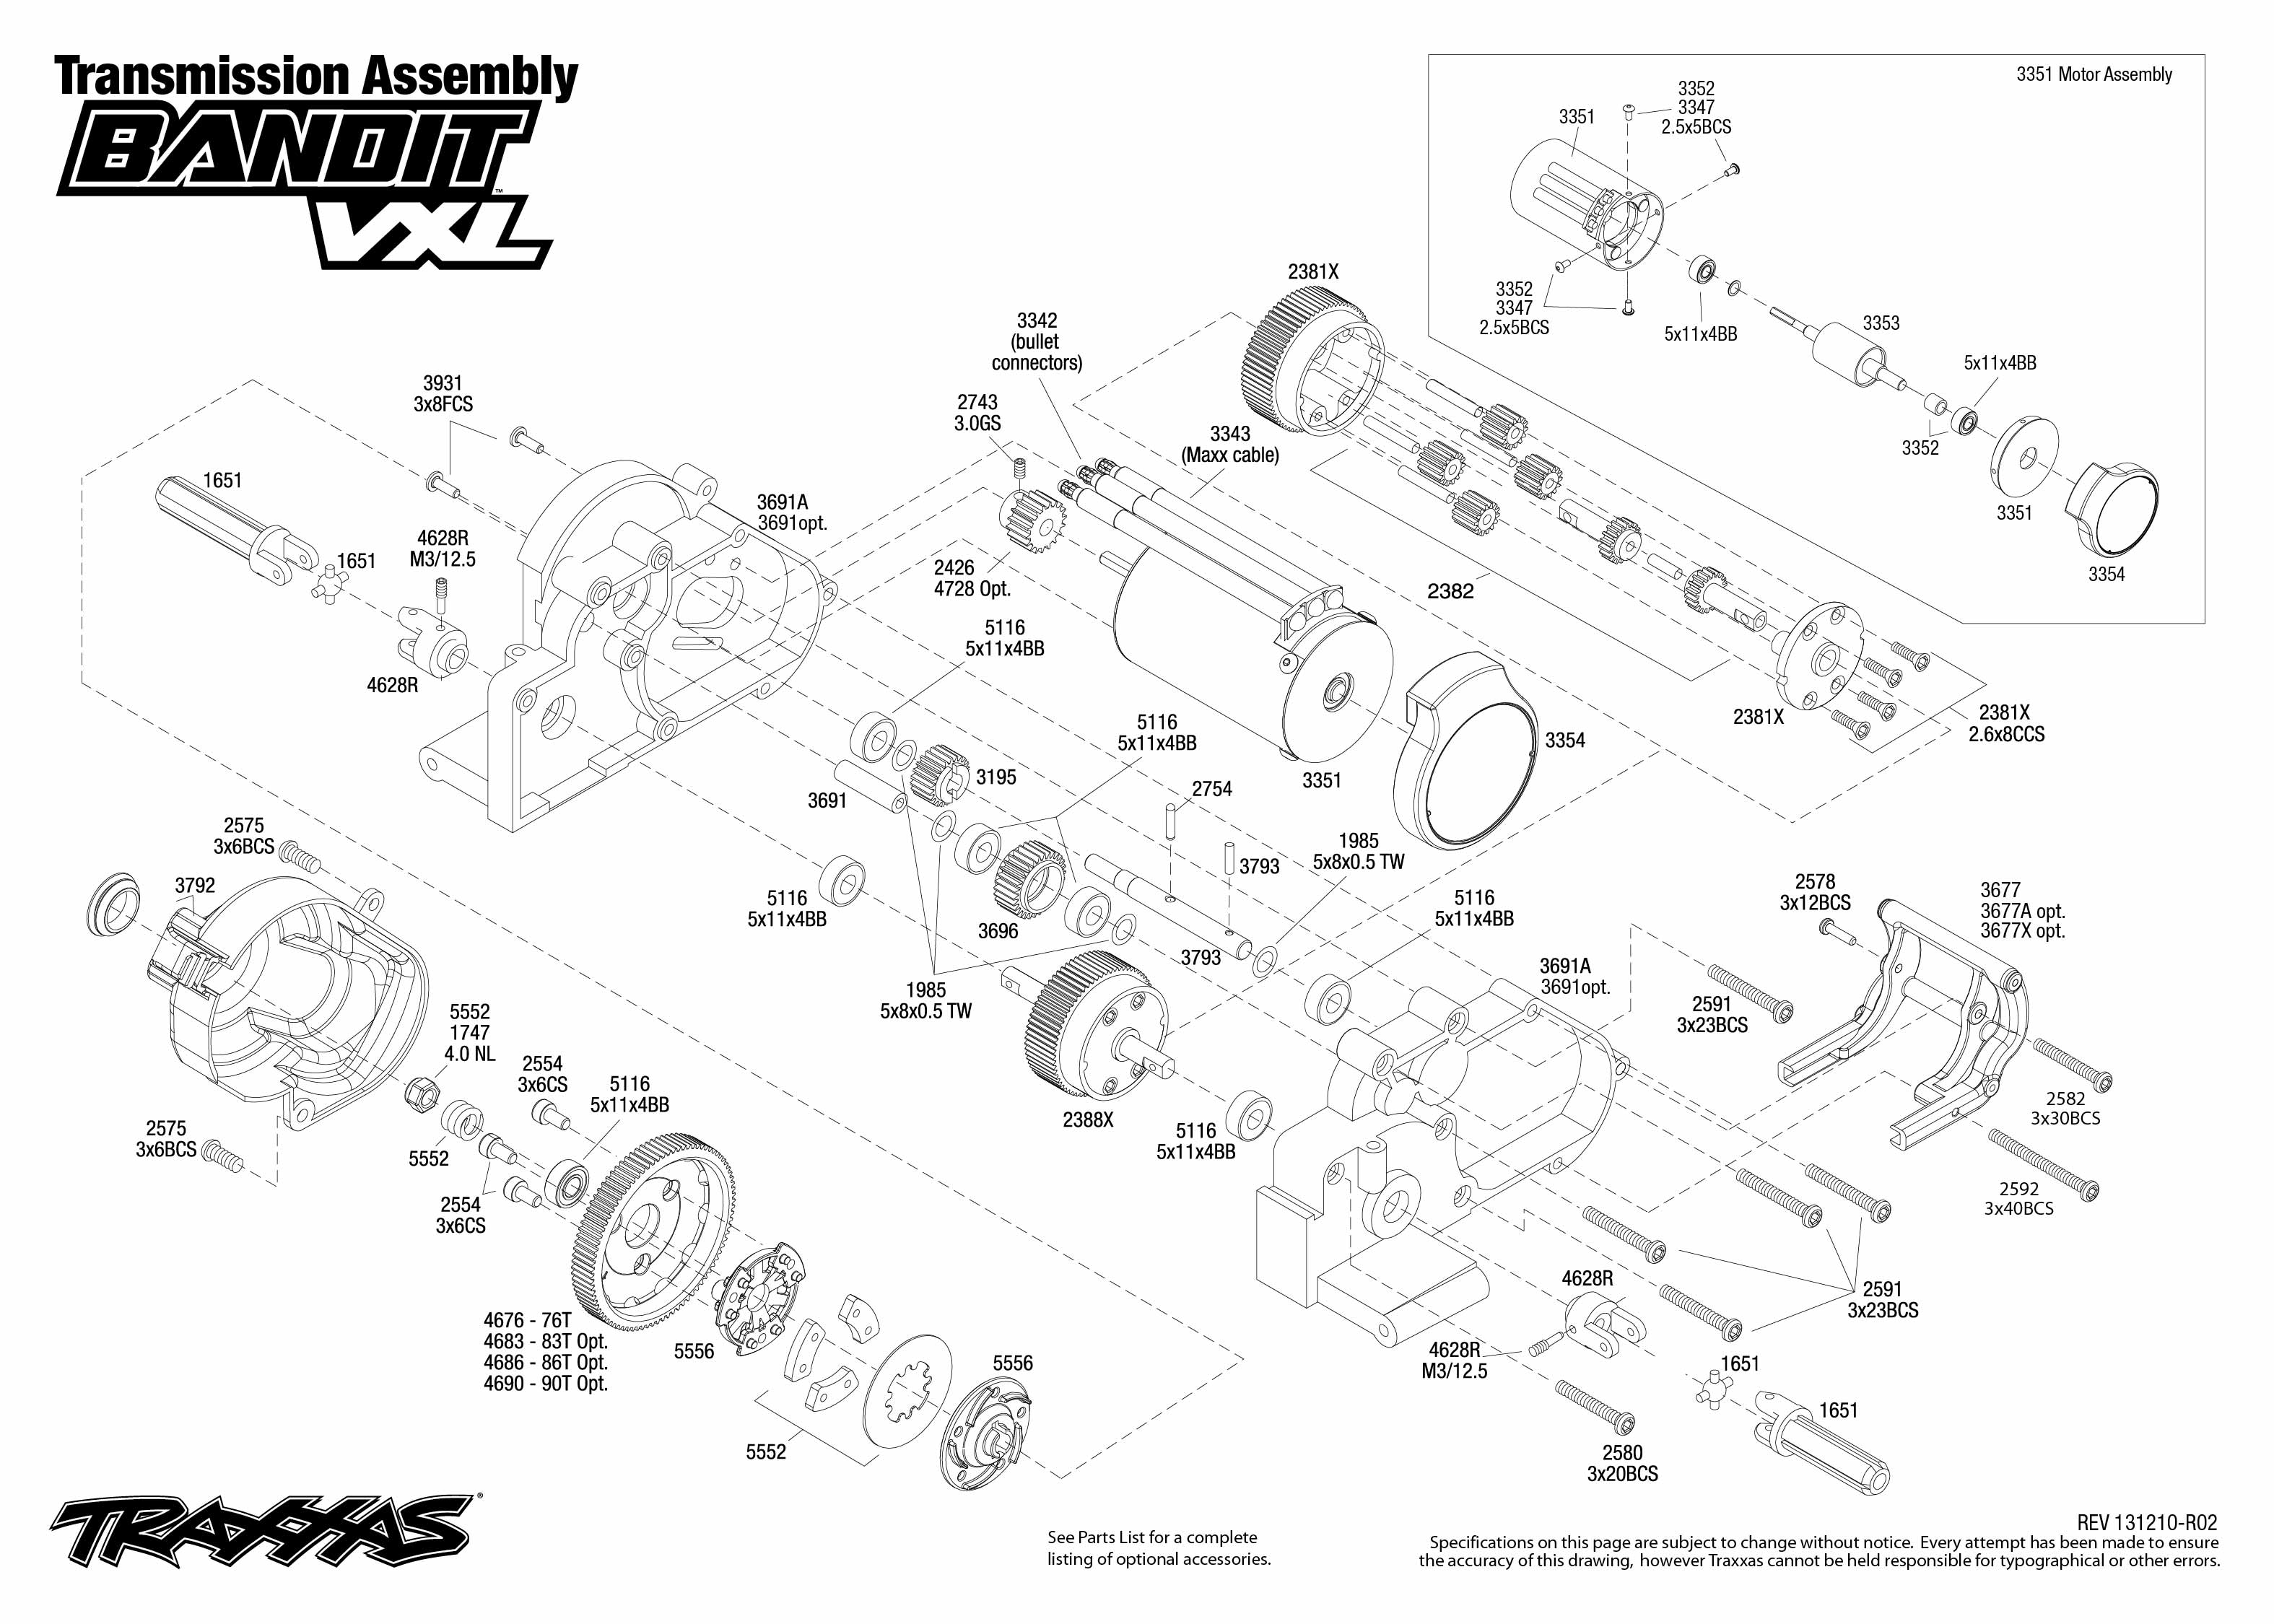 2407 transmission exploded view  bandit vxl